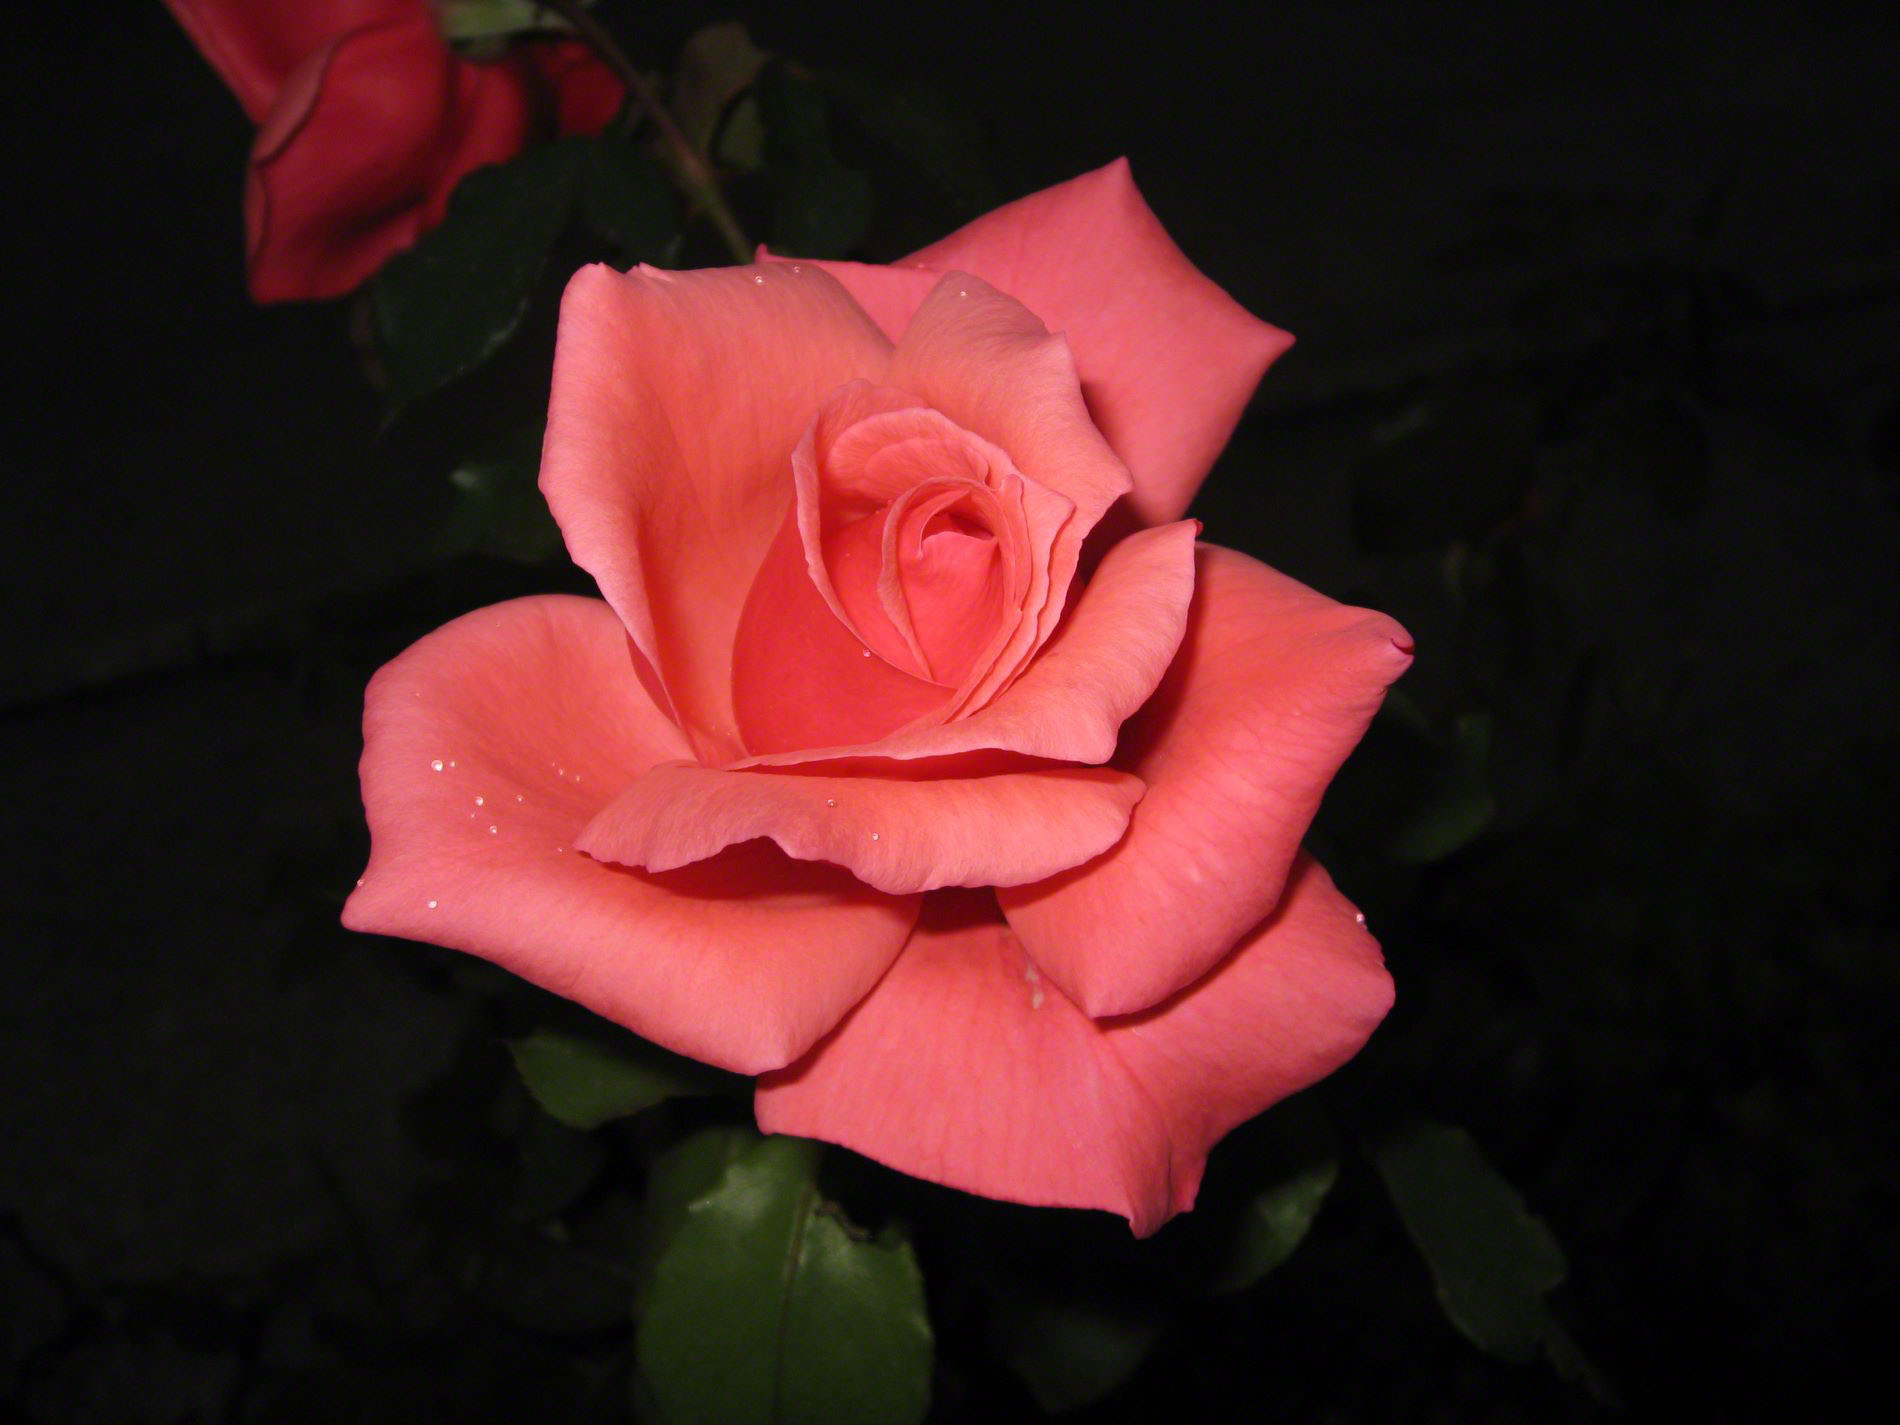 http://www.fabiovisentin.com/photography/photo/12/most-beautiful-rose_4672.jpg